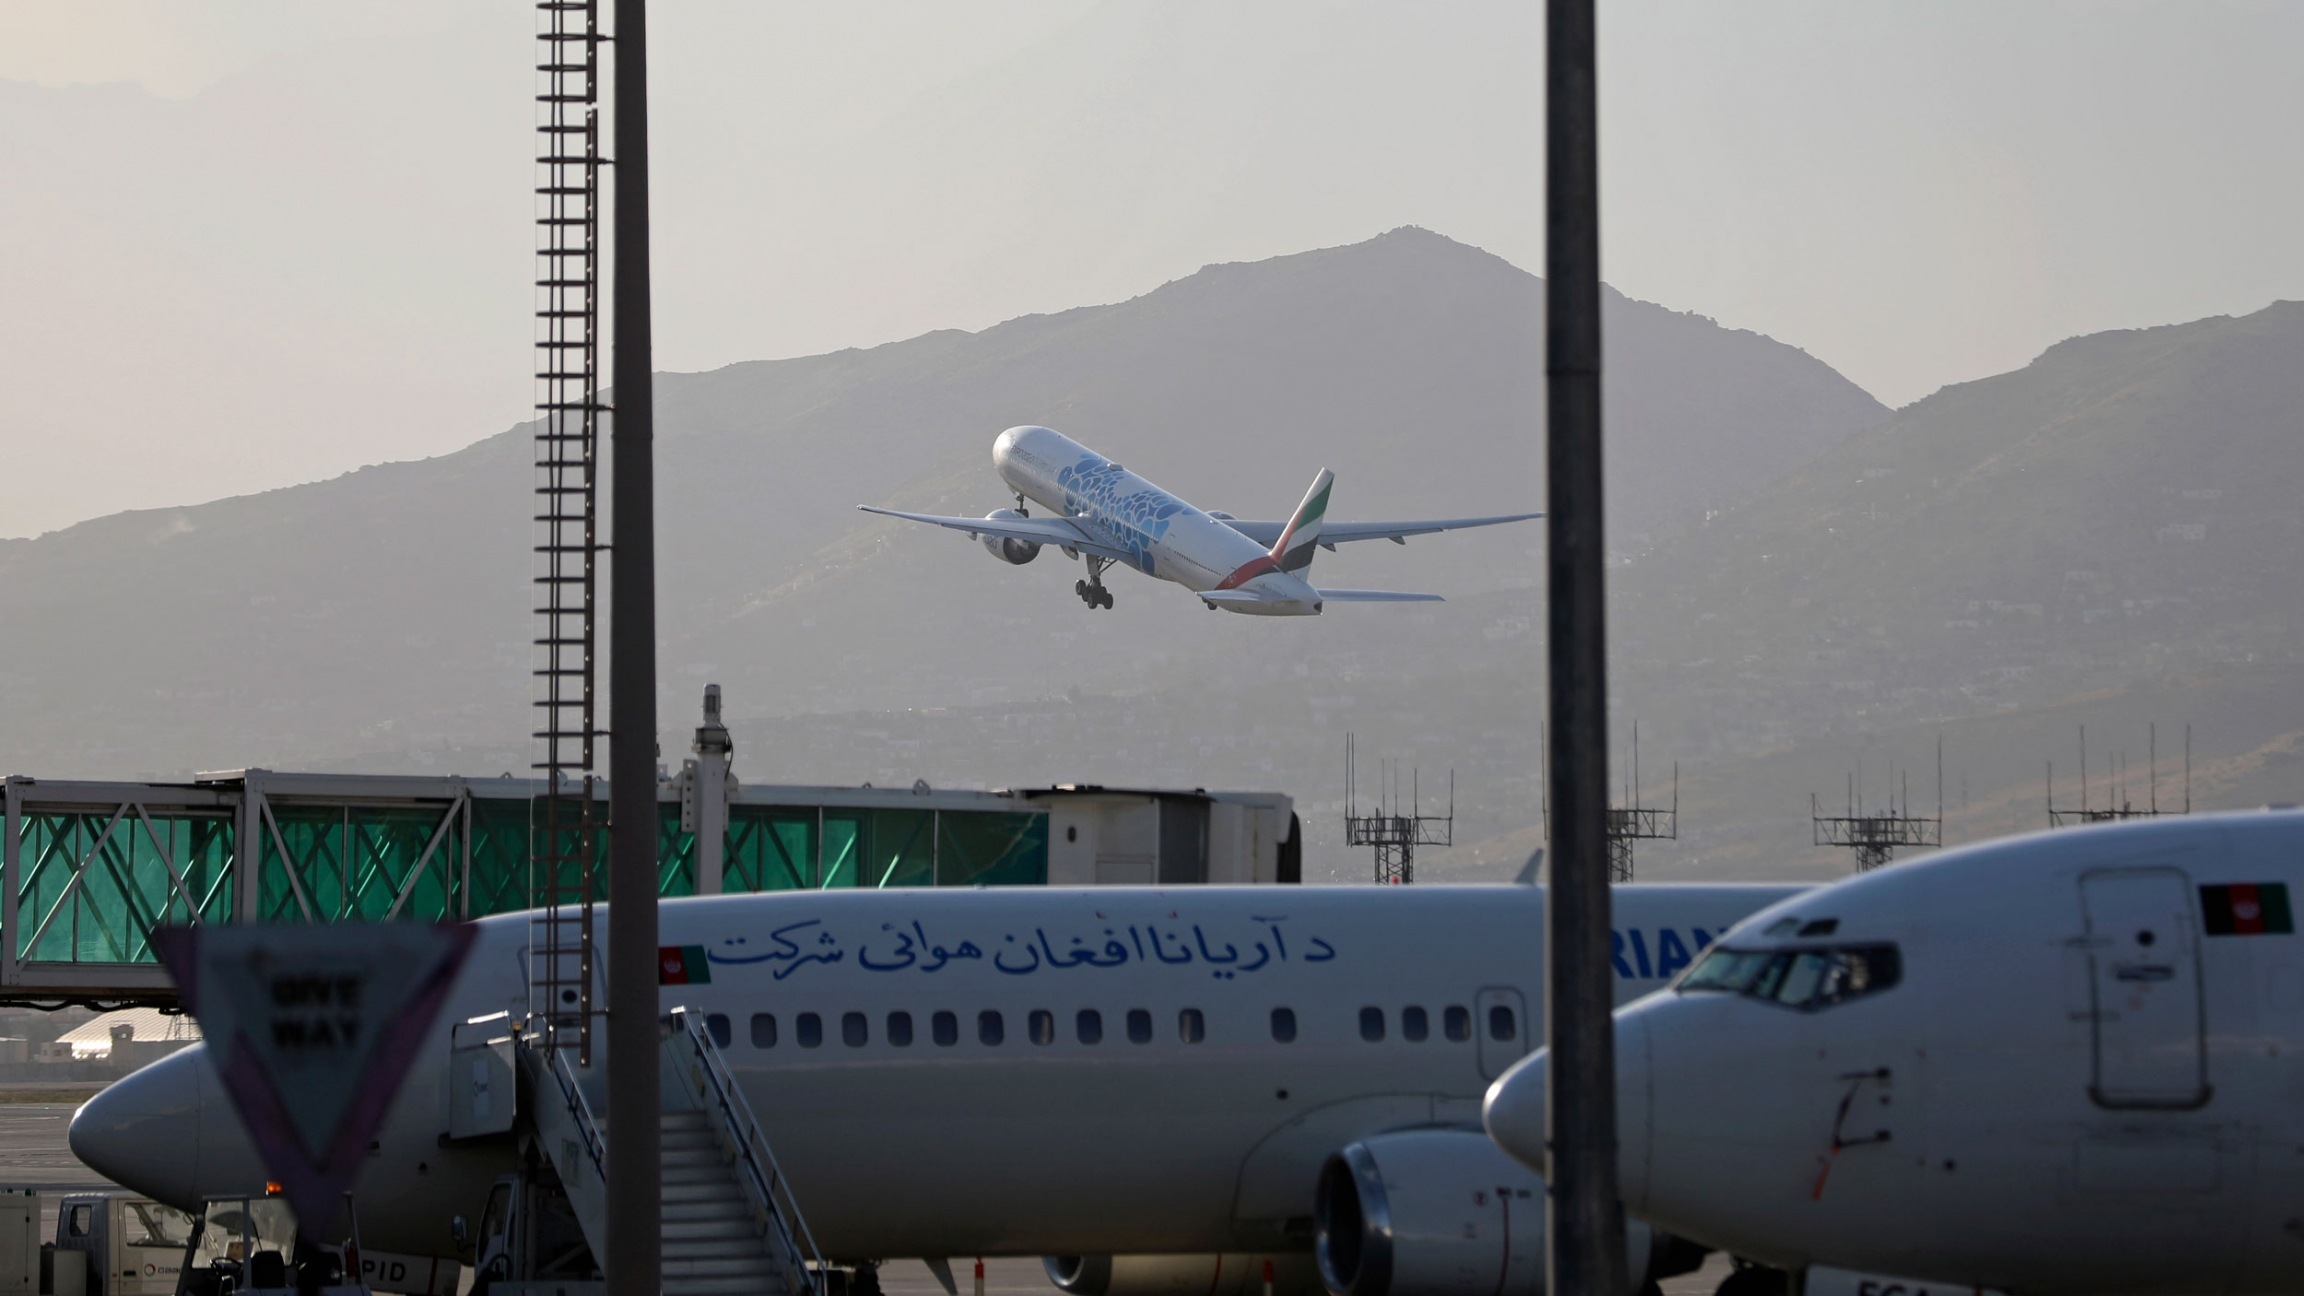 A plane takes off from Hamid Karzai International Airport in Kabul, Afghanistan, Sunday, July 4, 2021.